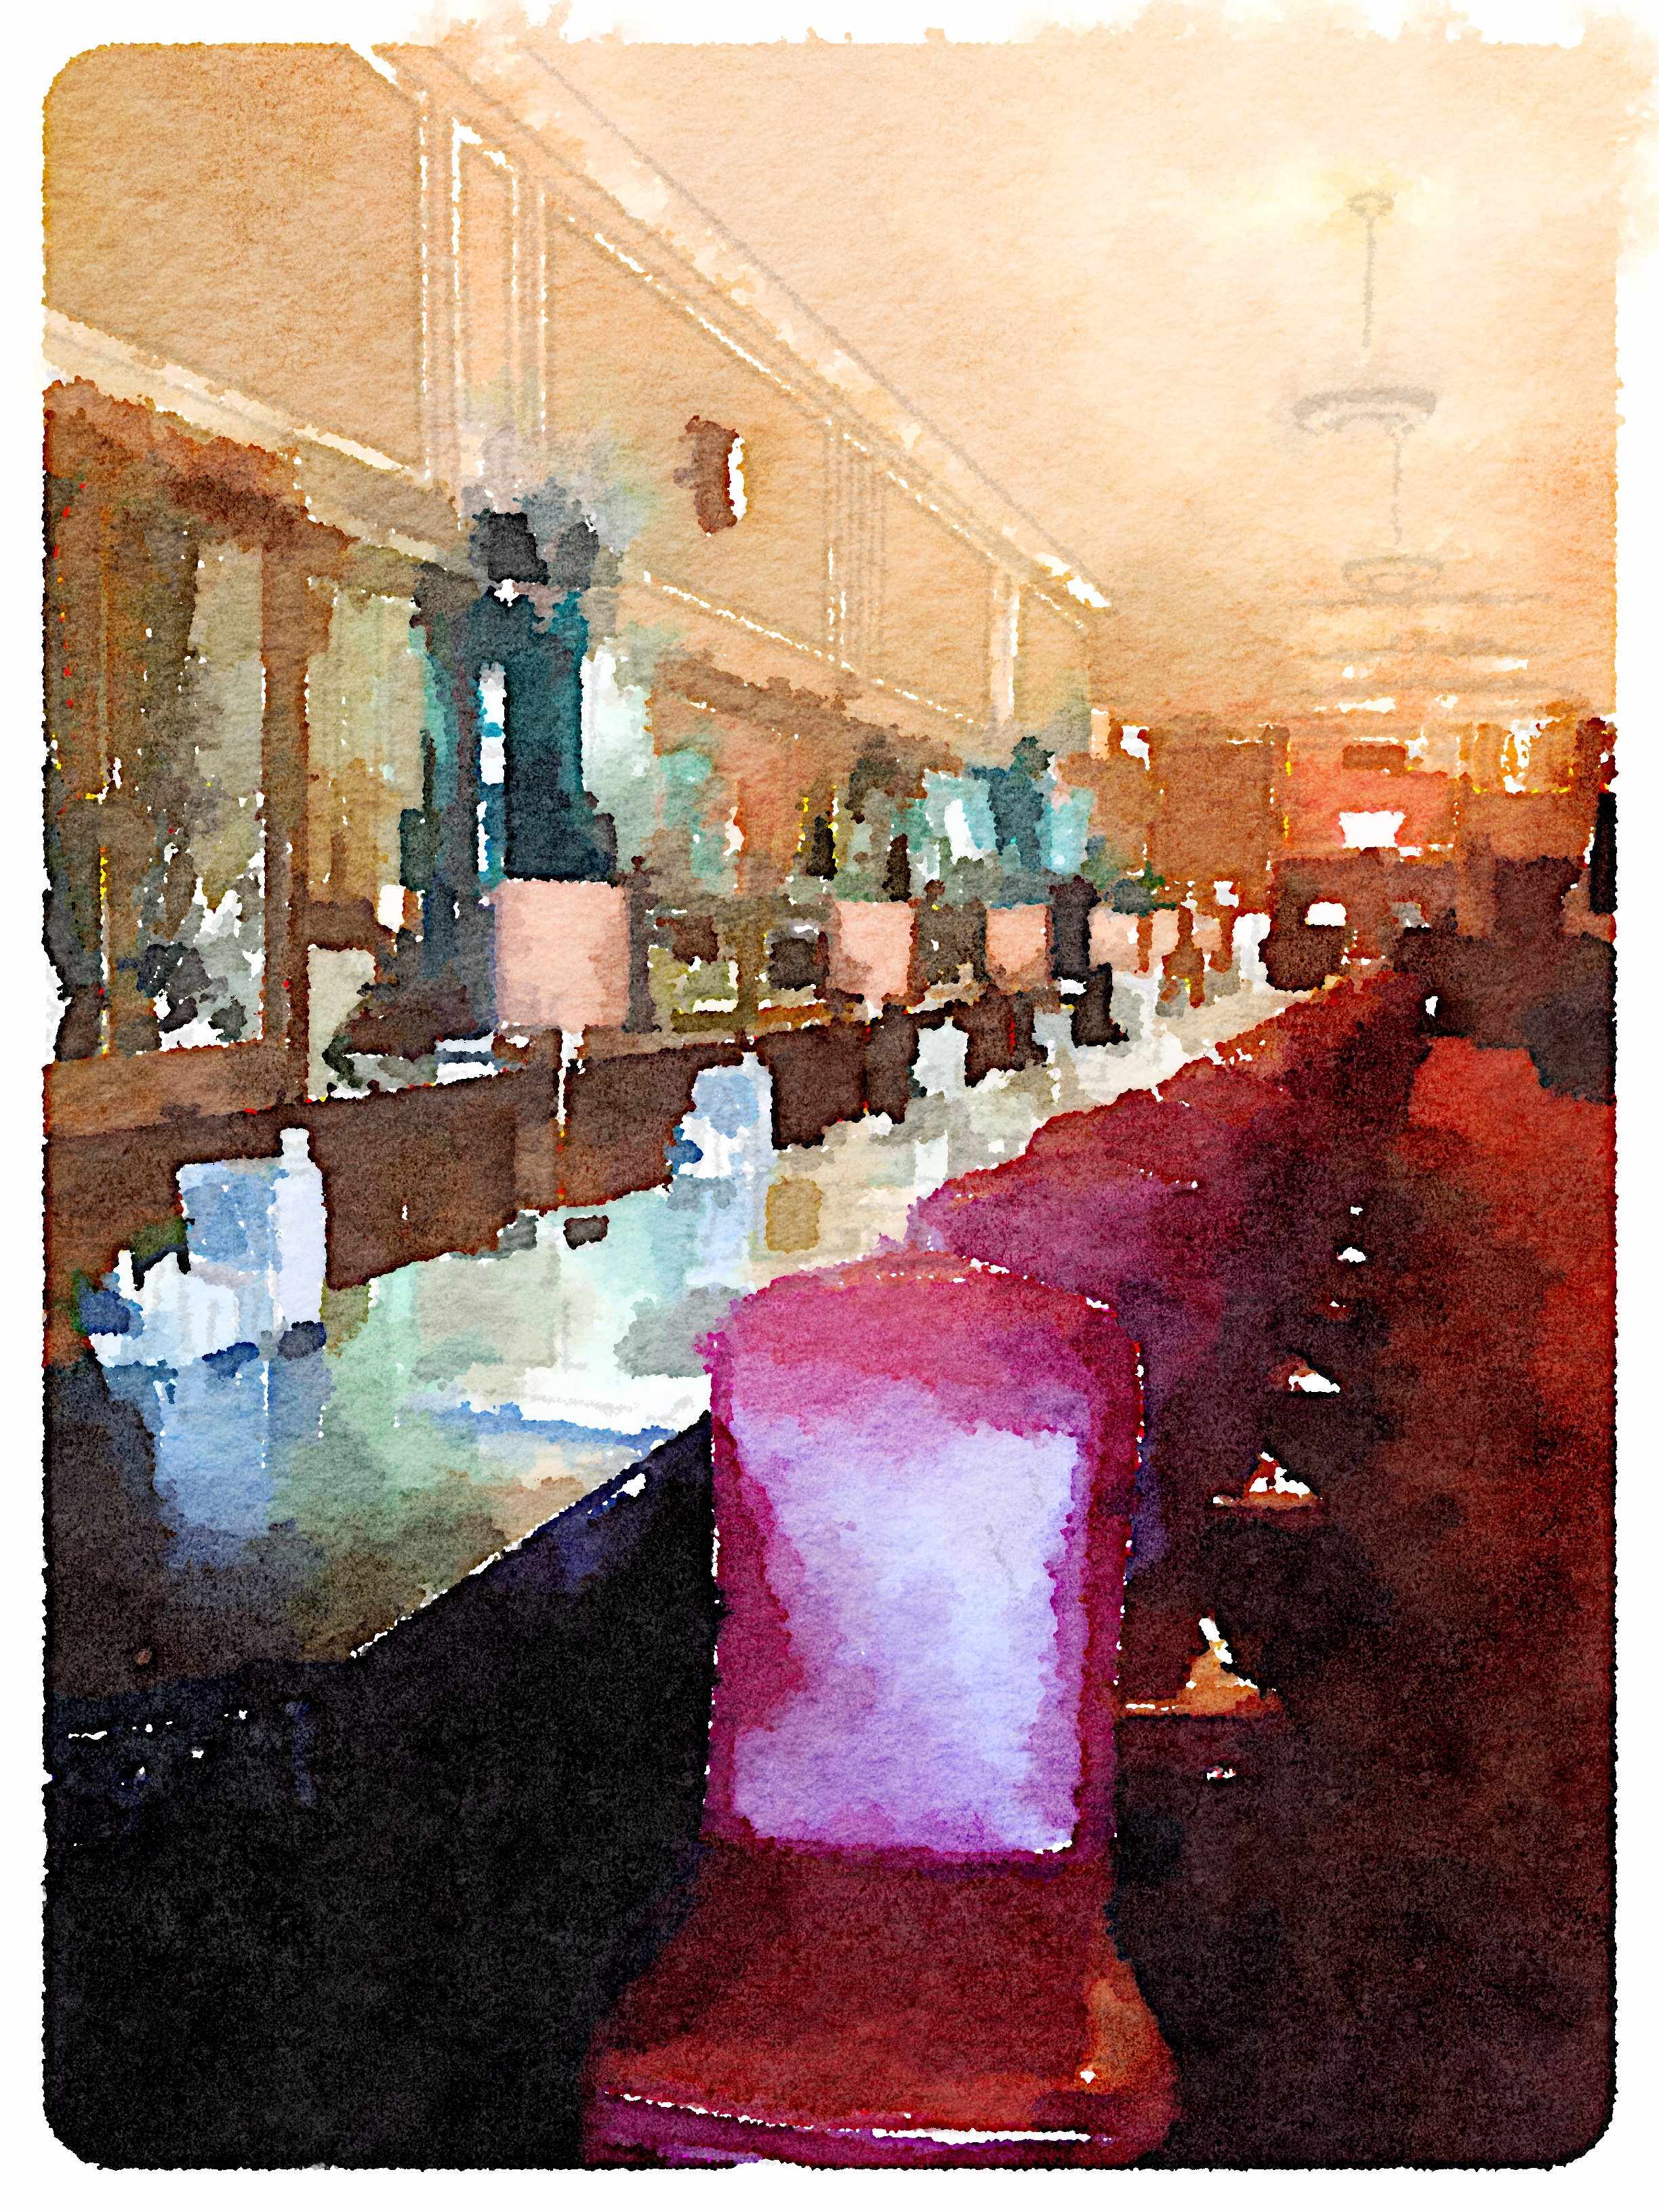 Waterlogue painting - purchase print @  Society6  or  zazzle